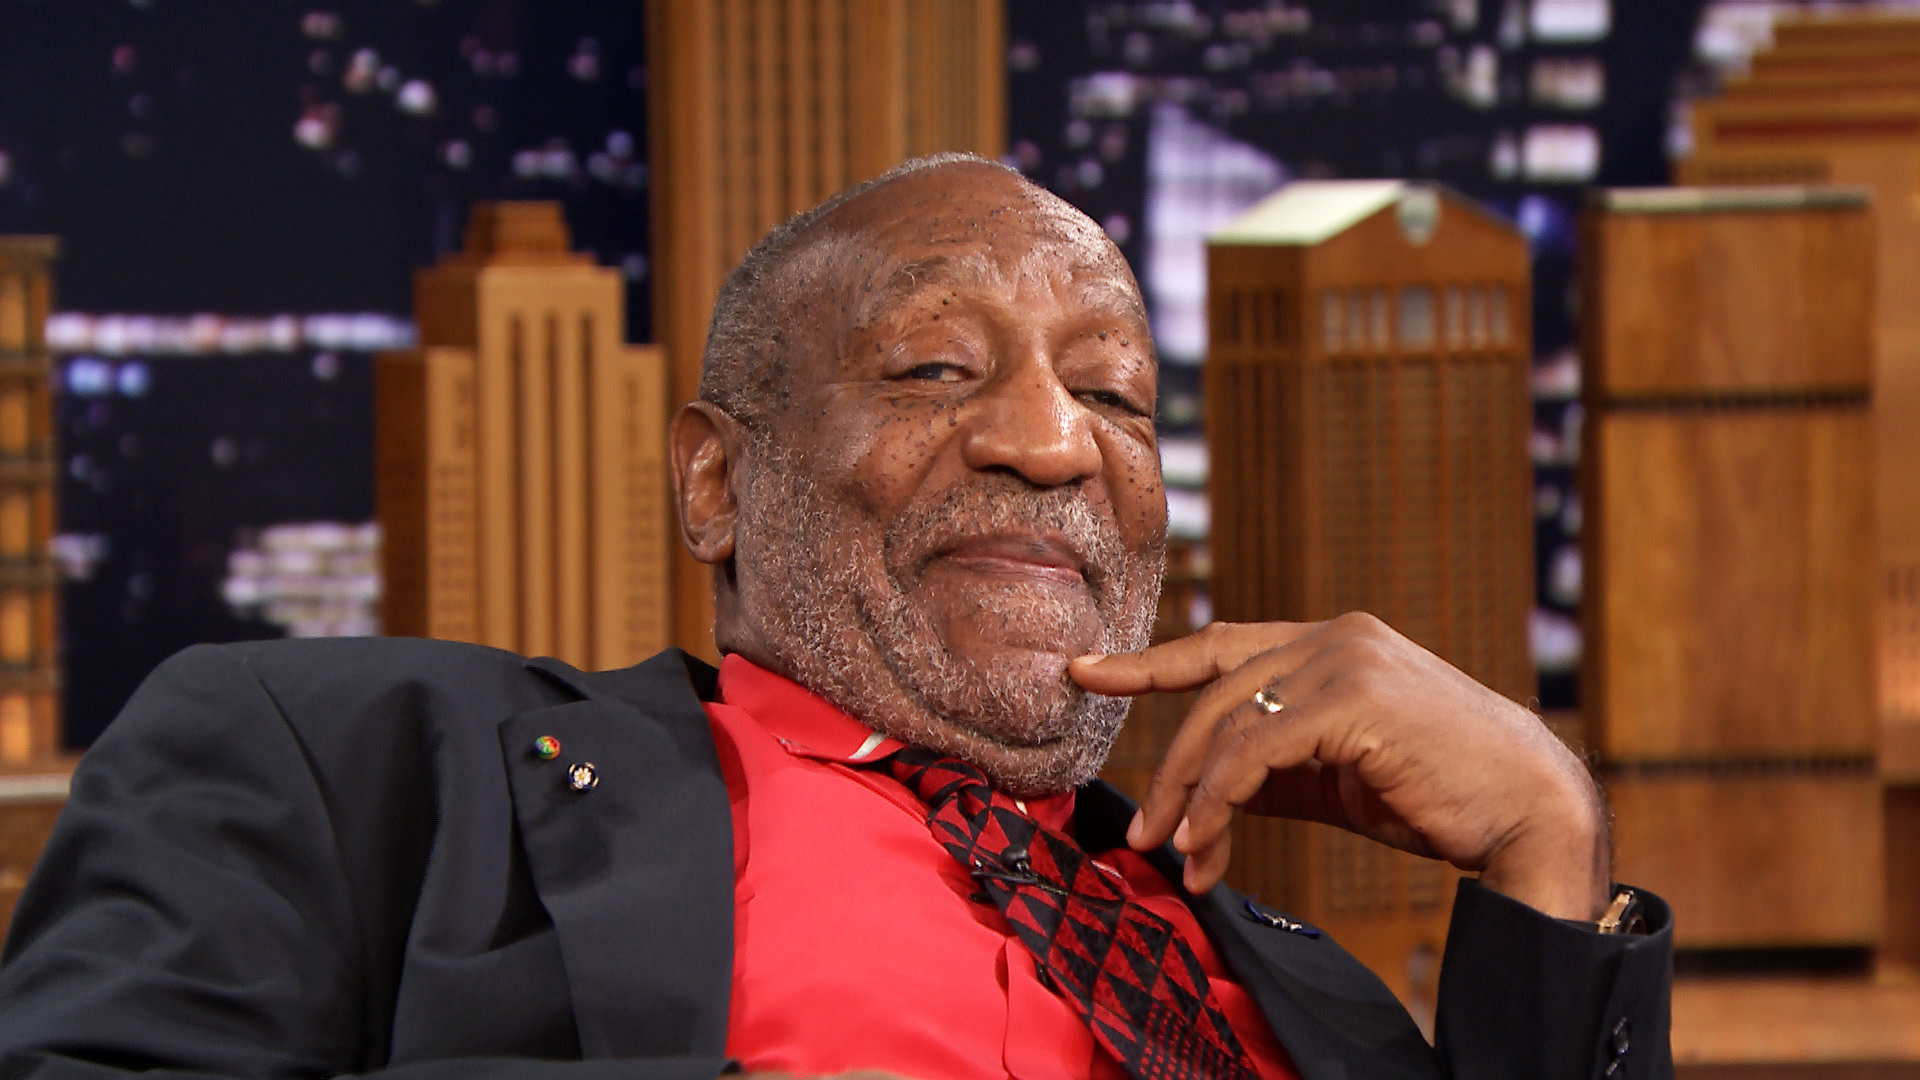 1920x1080 - Bill Cosby Wallpapers 2